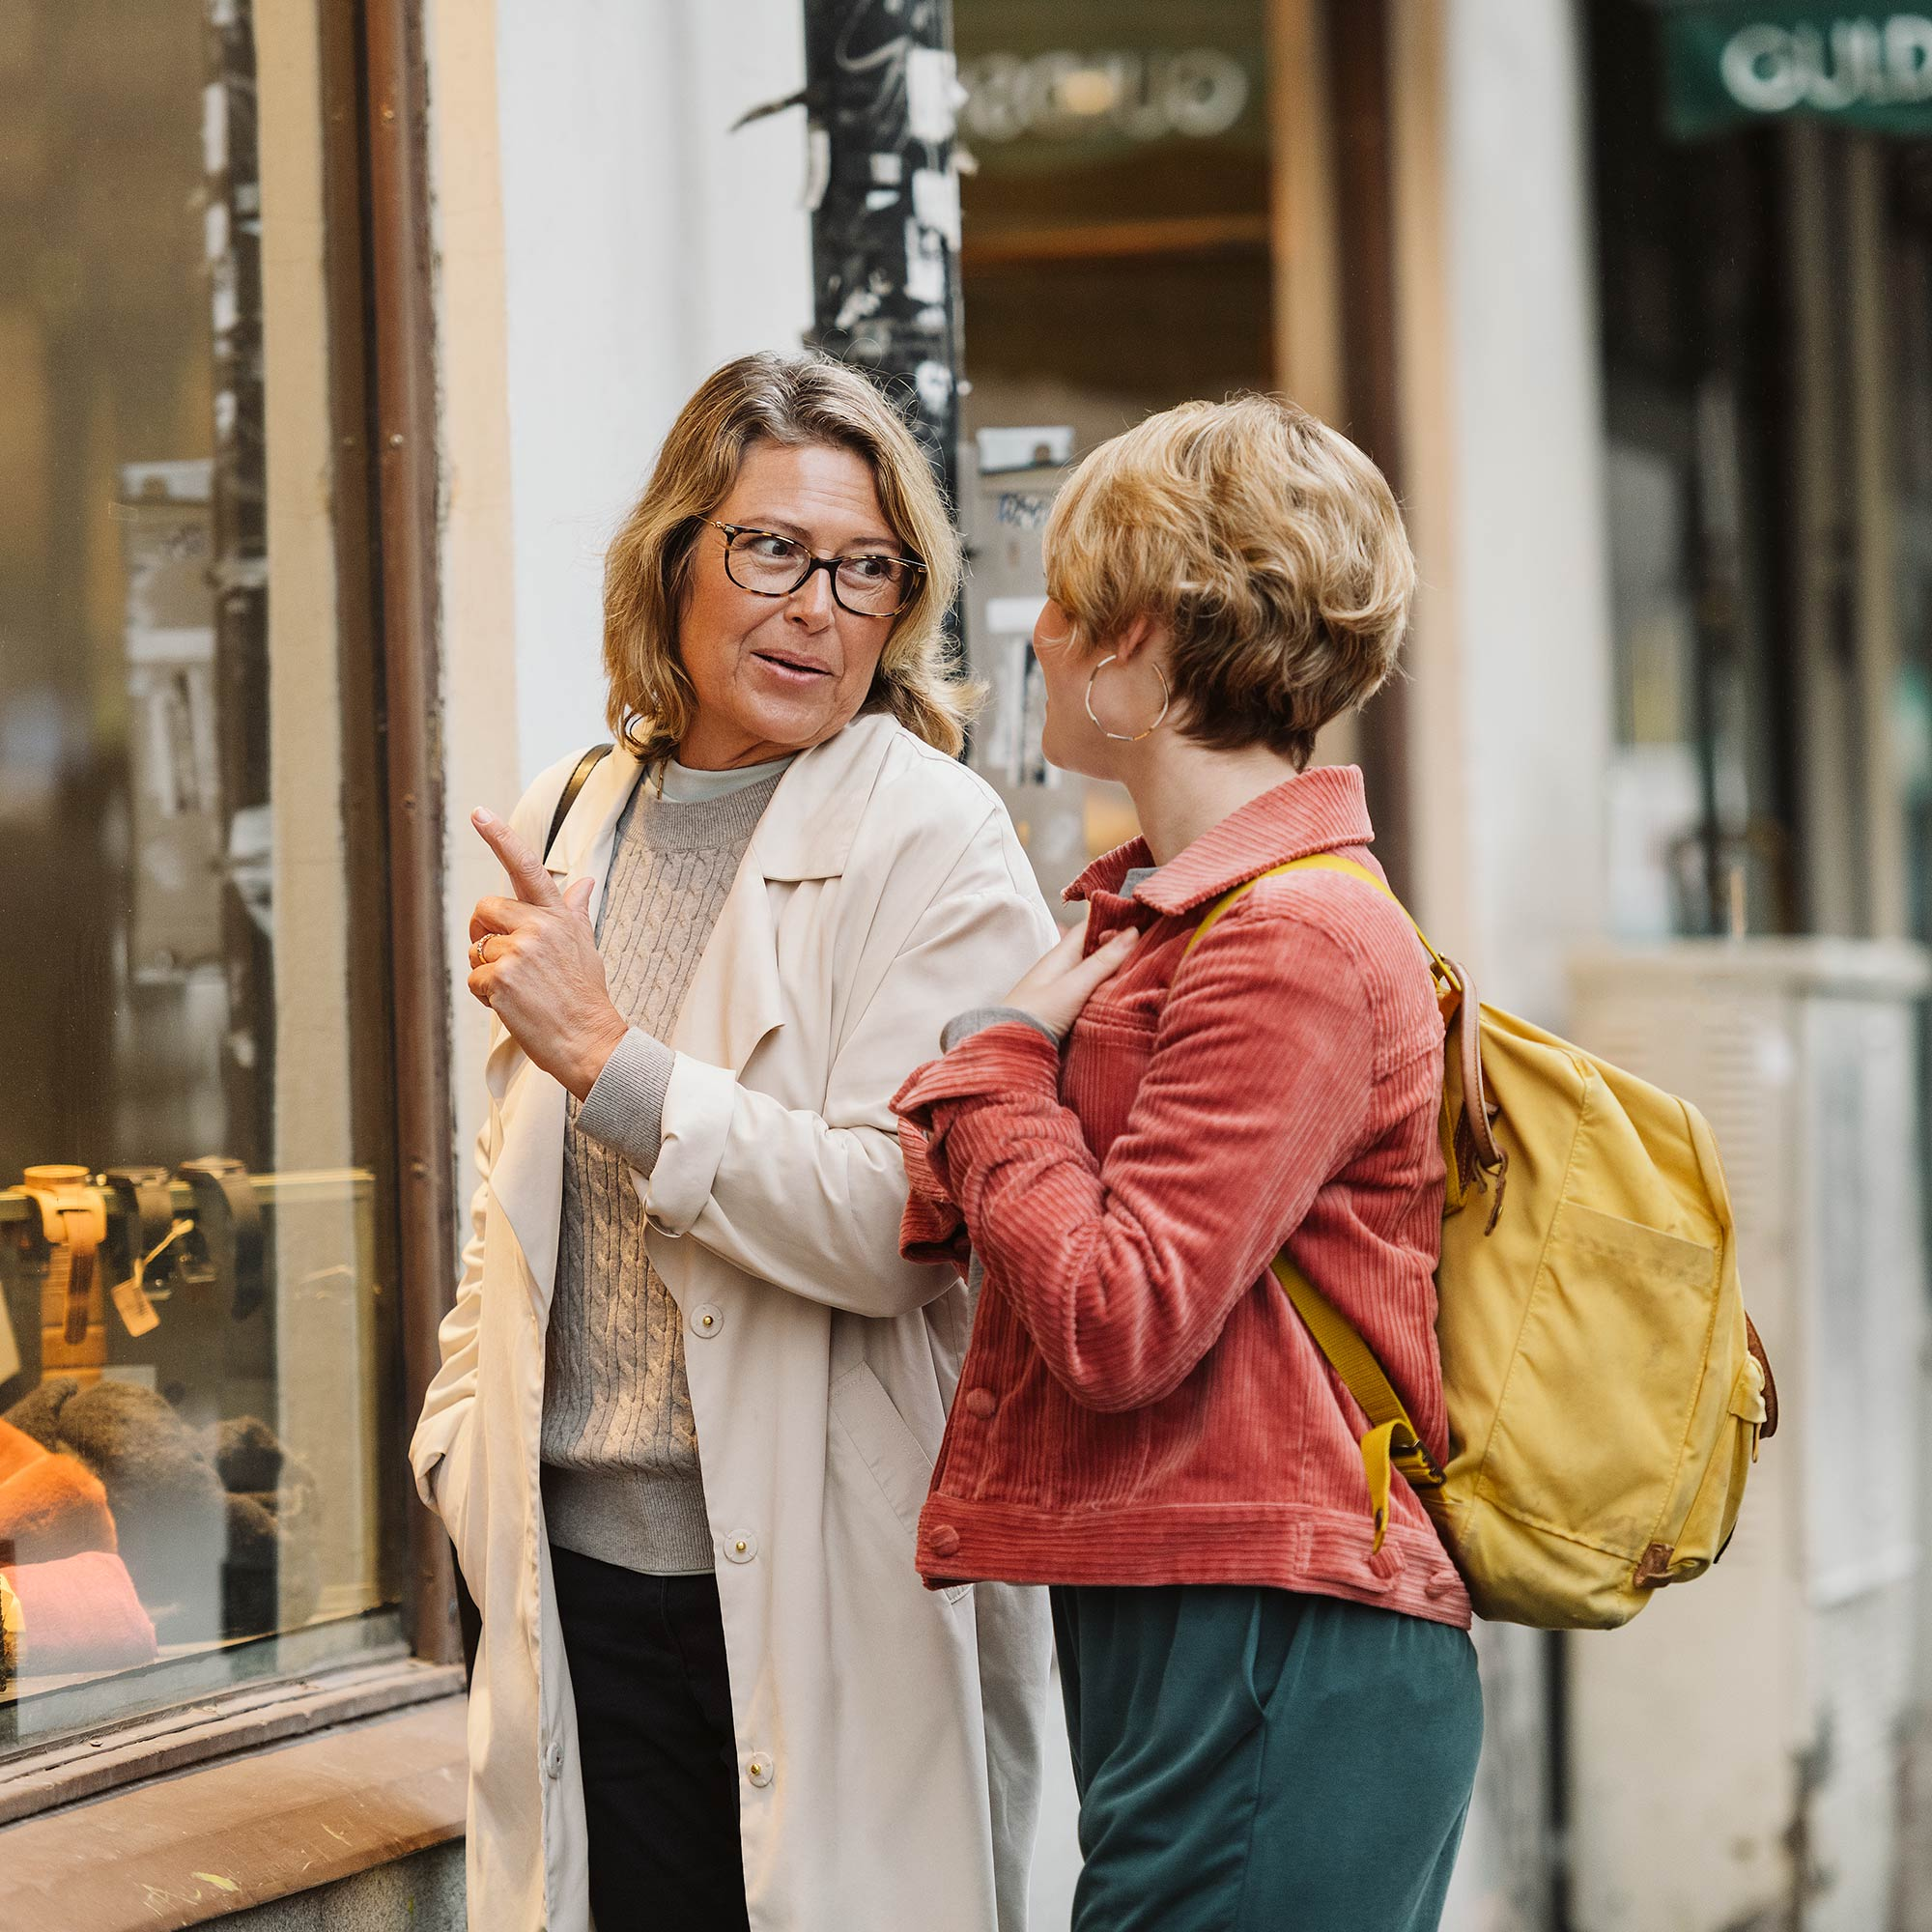 Two women window shopping.